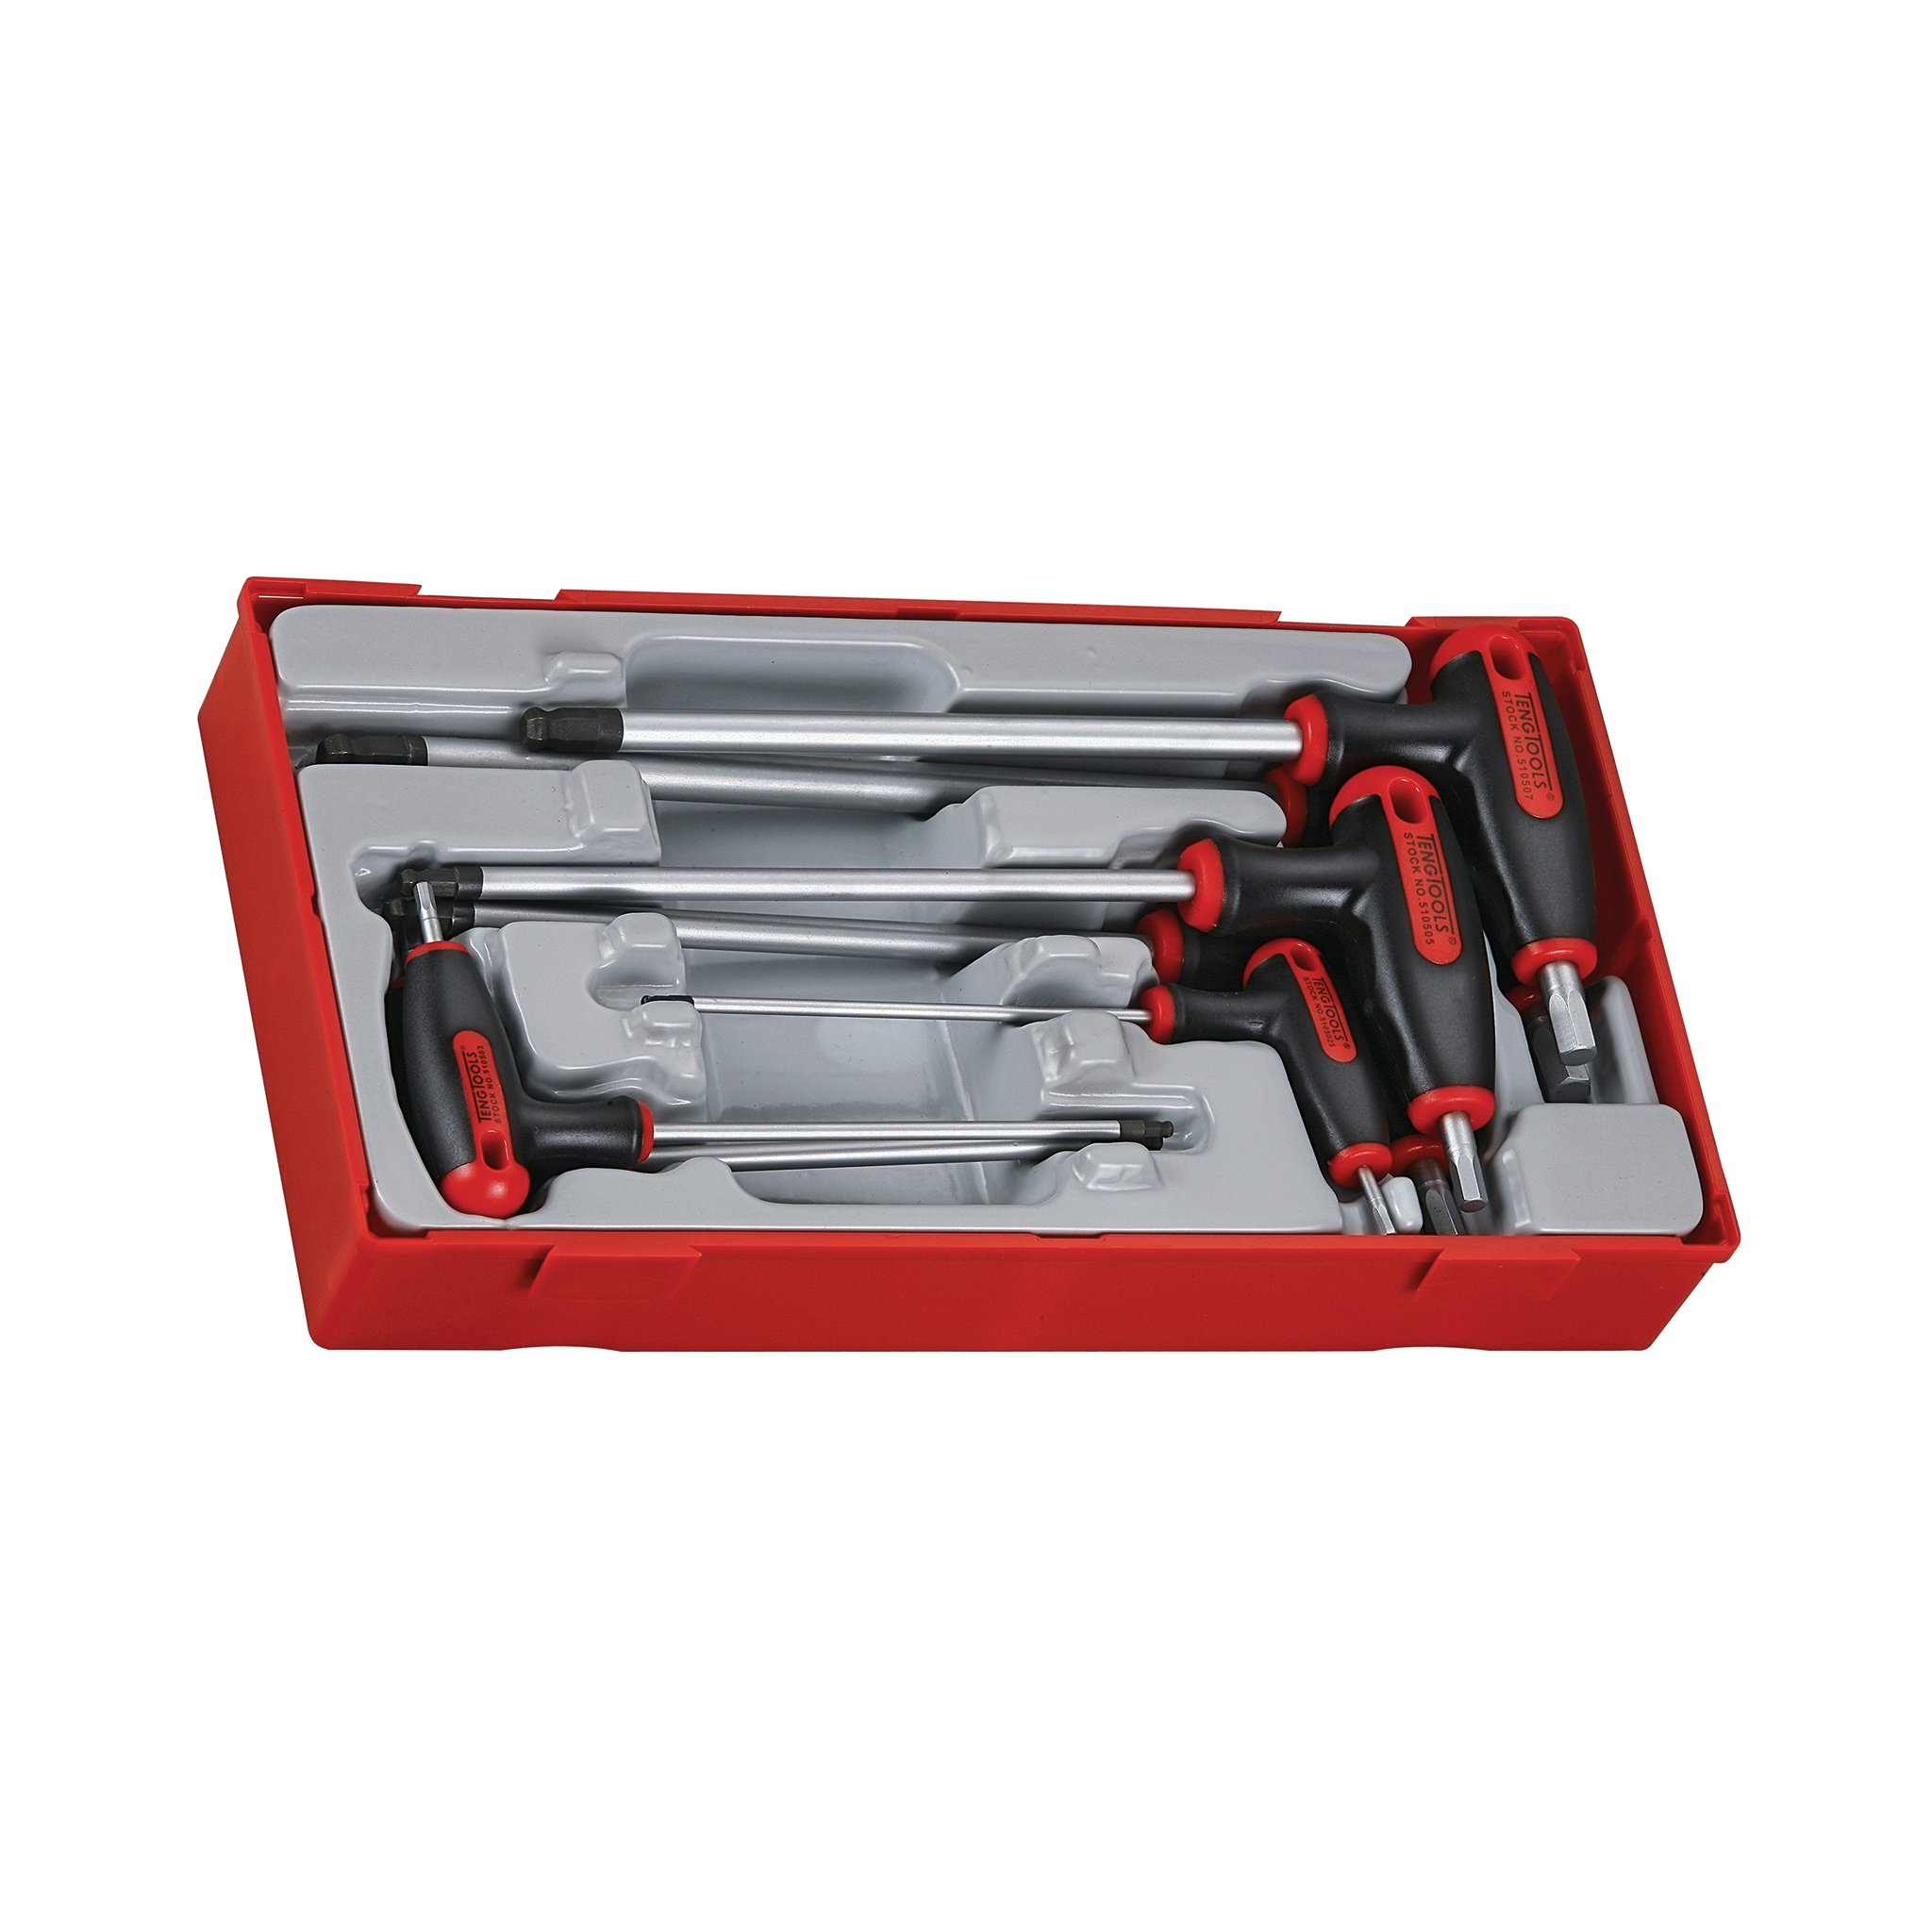 Teng Tools 7 Piece T Handle Hex Key Set - TTHEX7